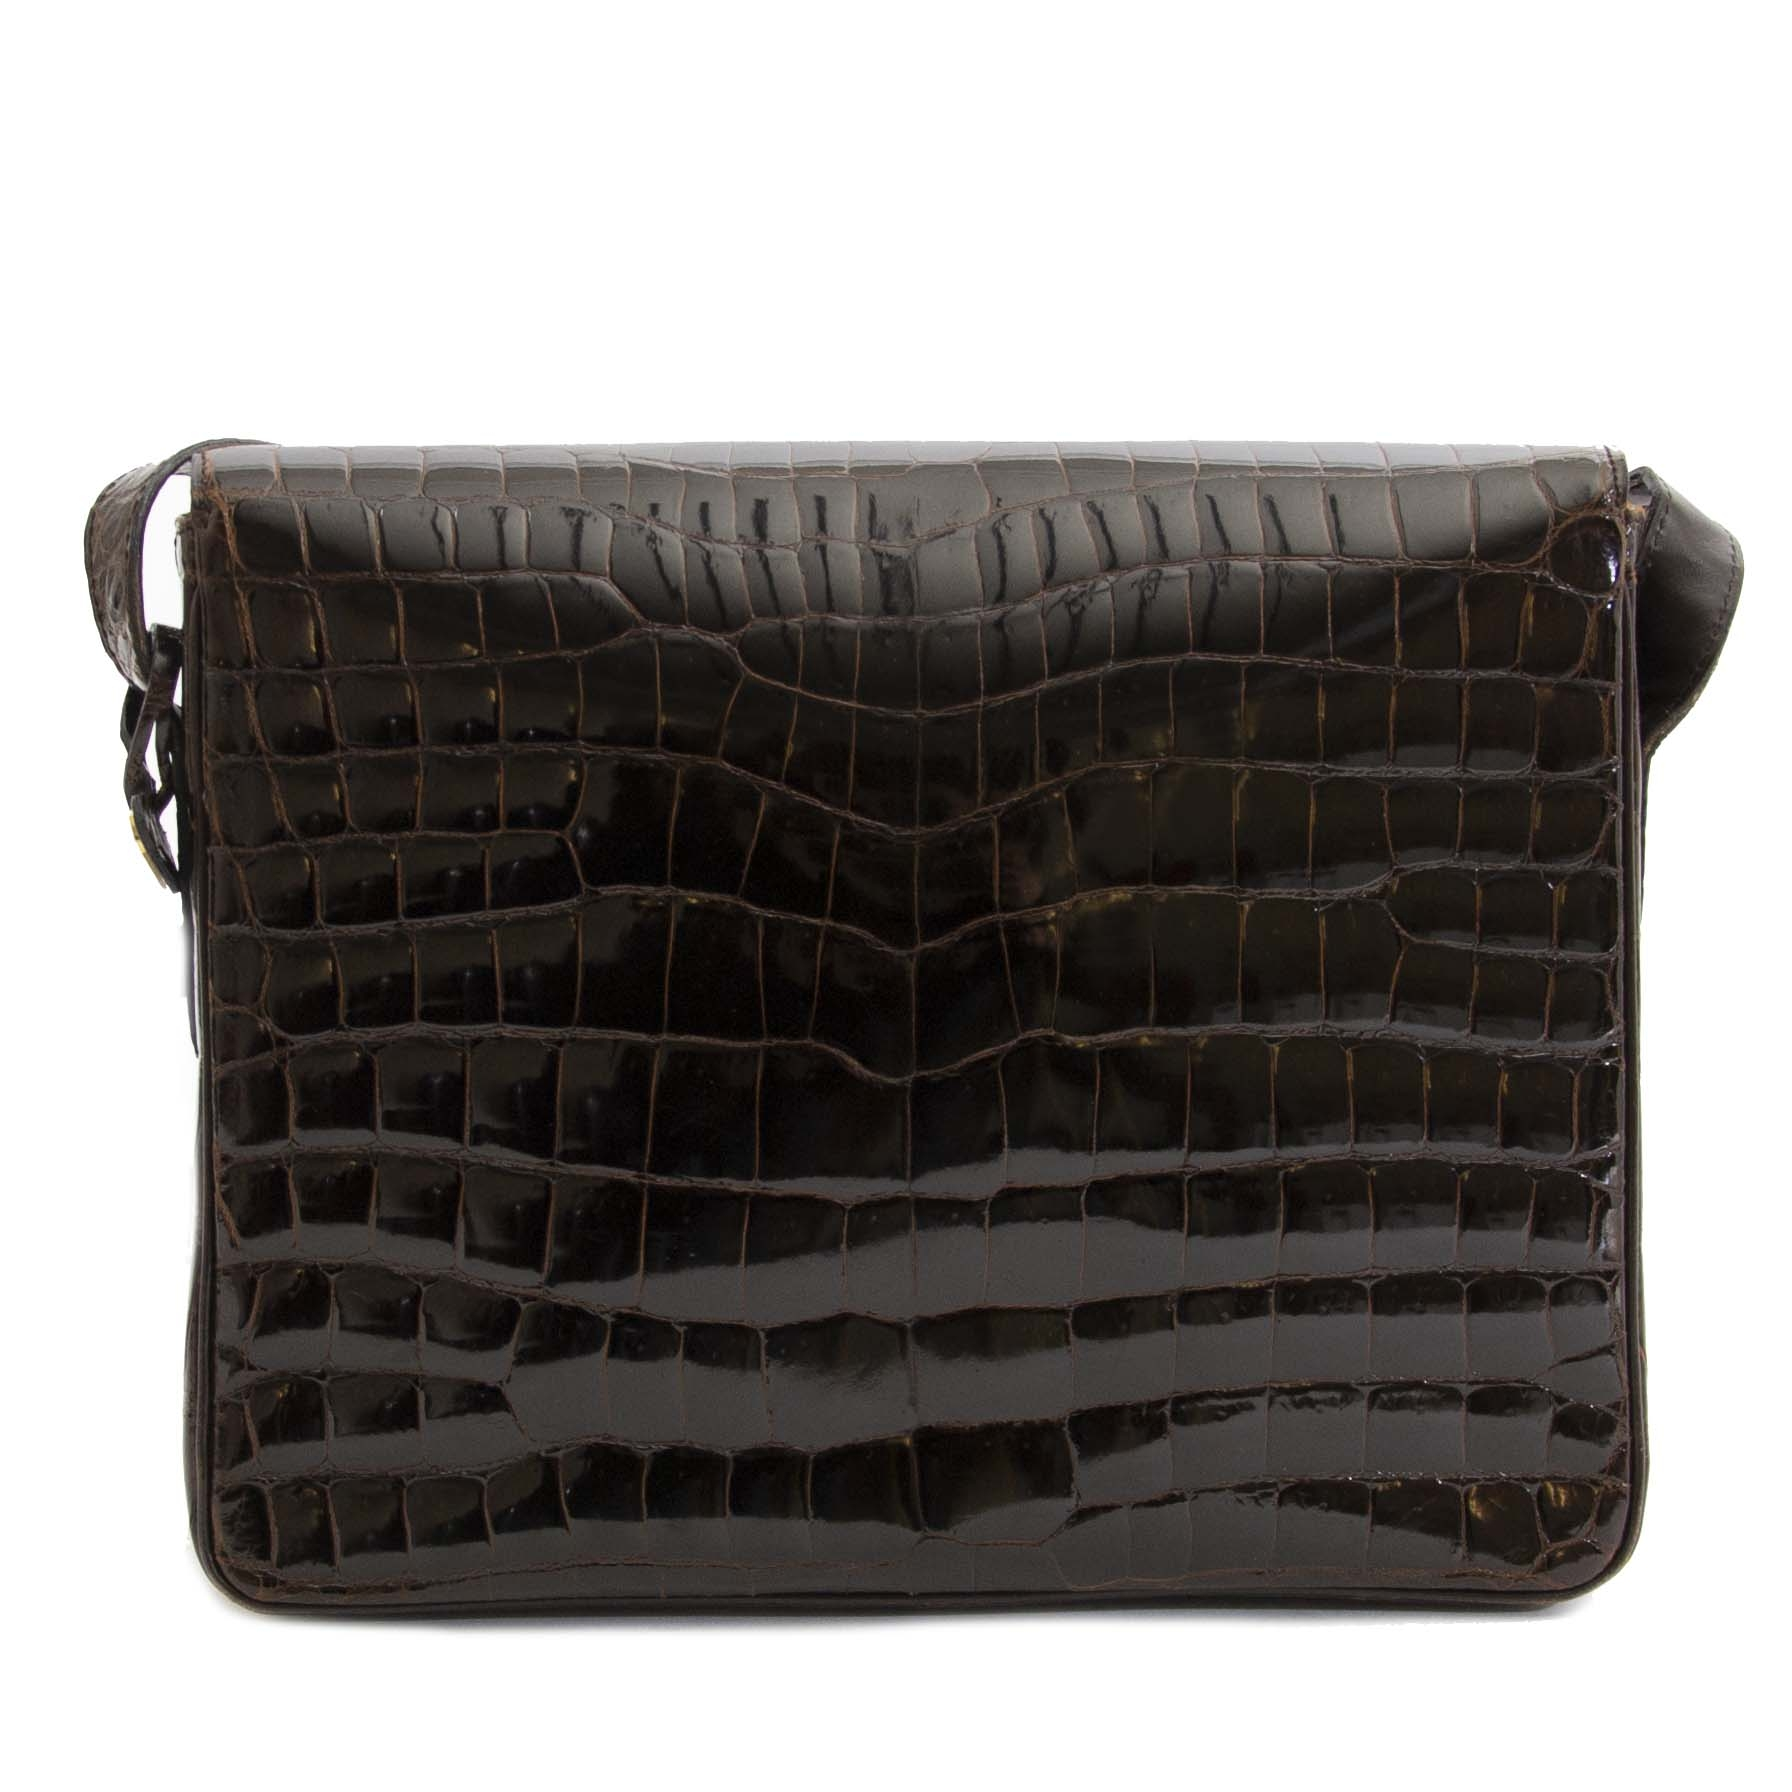 9523a60beb88 ... koop online webshop LabelLOV Authentic second hand vintage Delvaux Dark  Brown Croco Passerelle Shoulder Bag buy online webshop LabelLOV